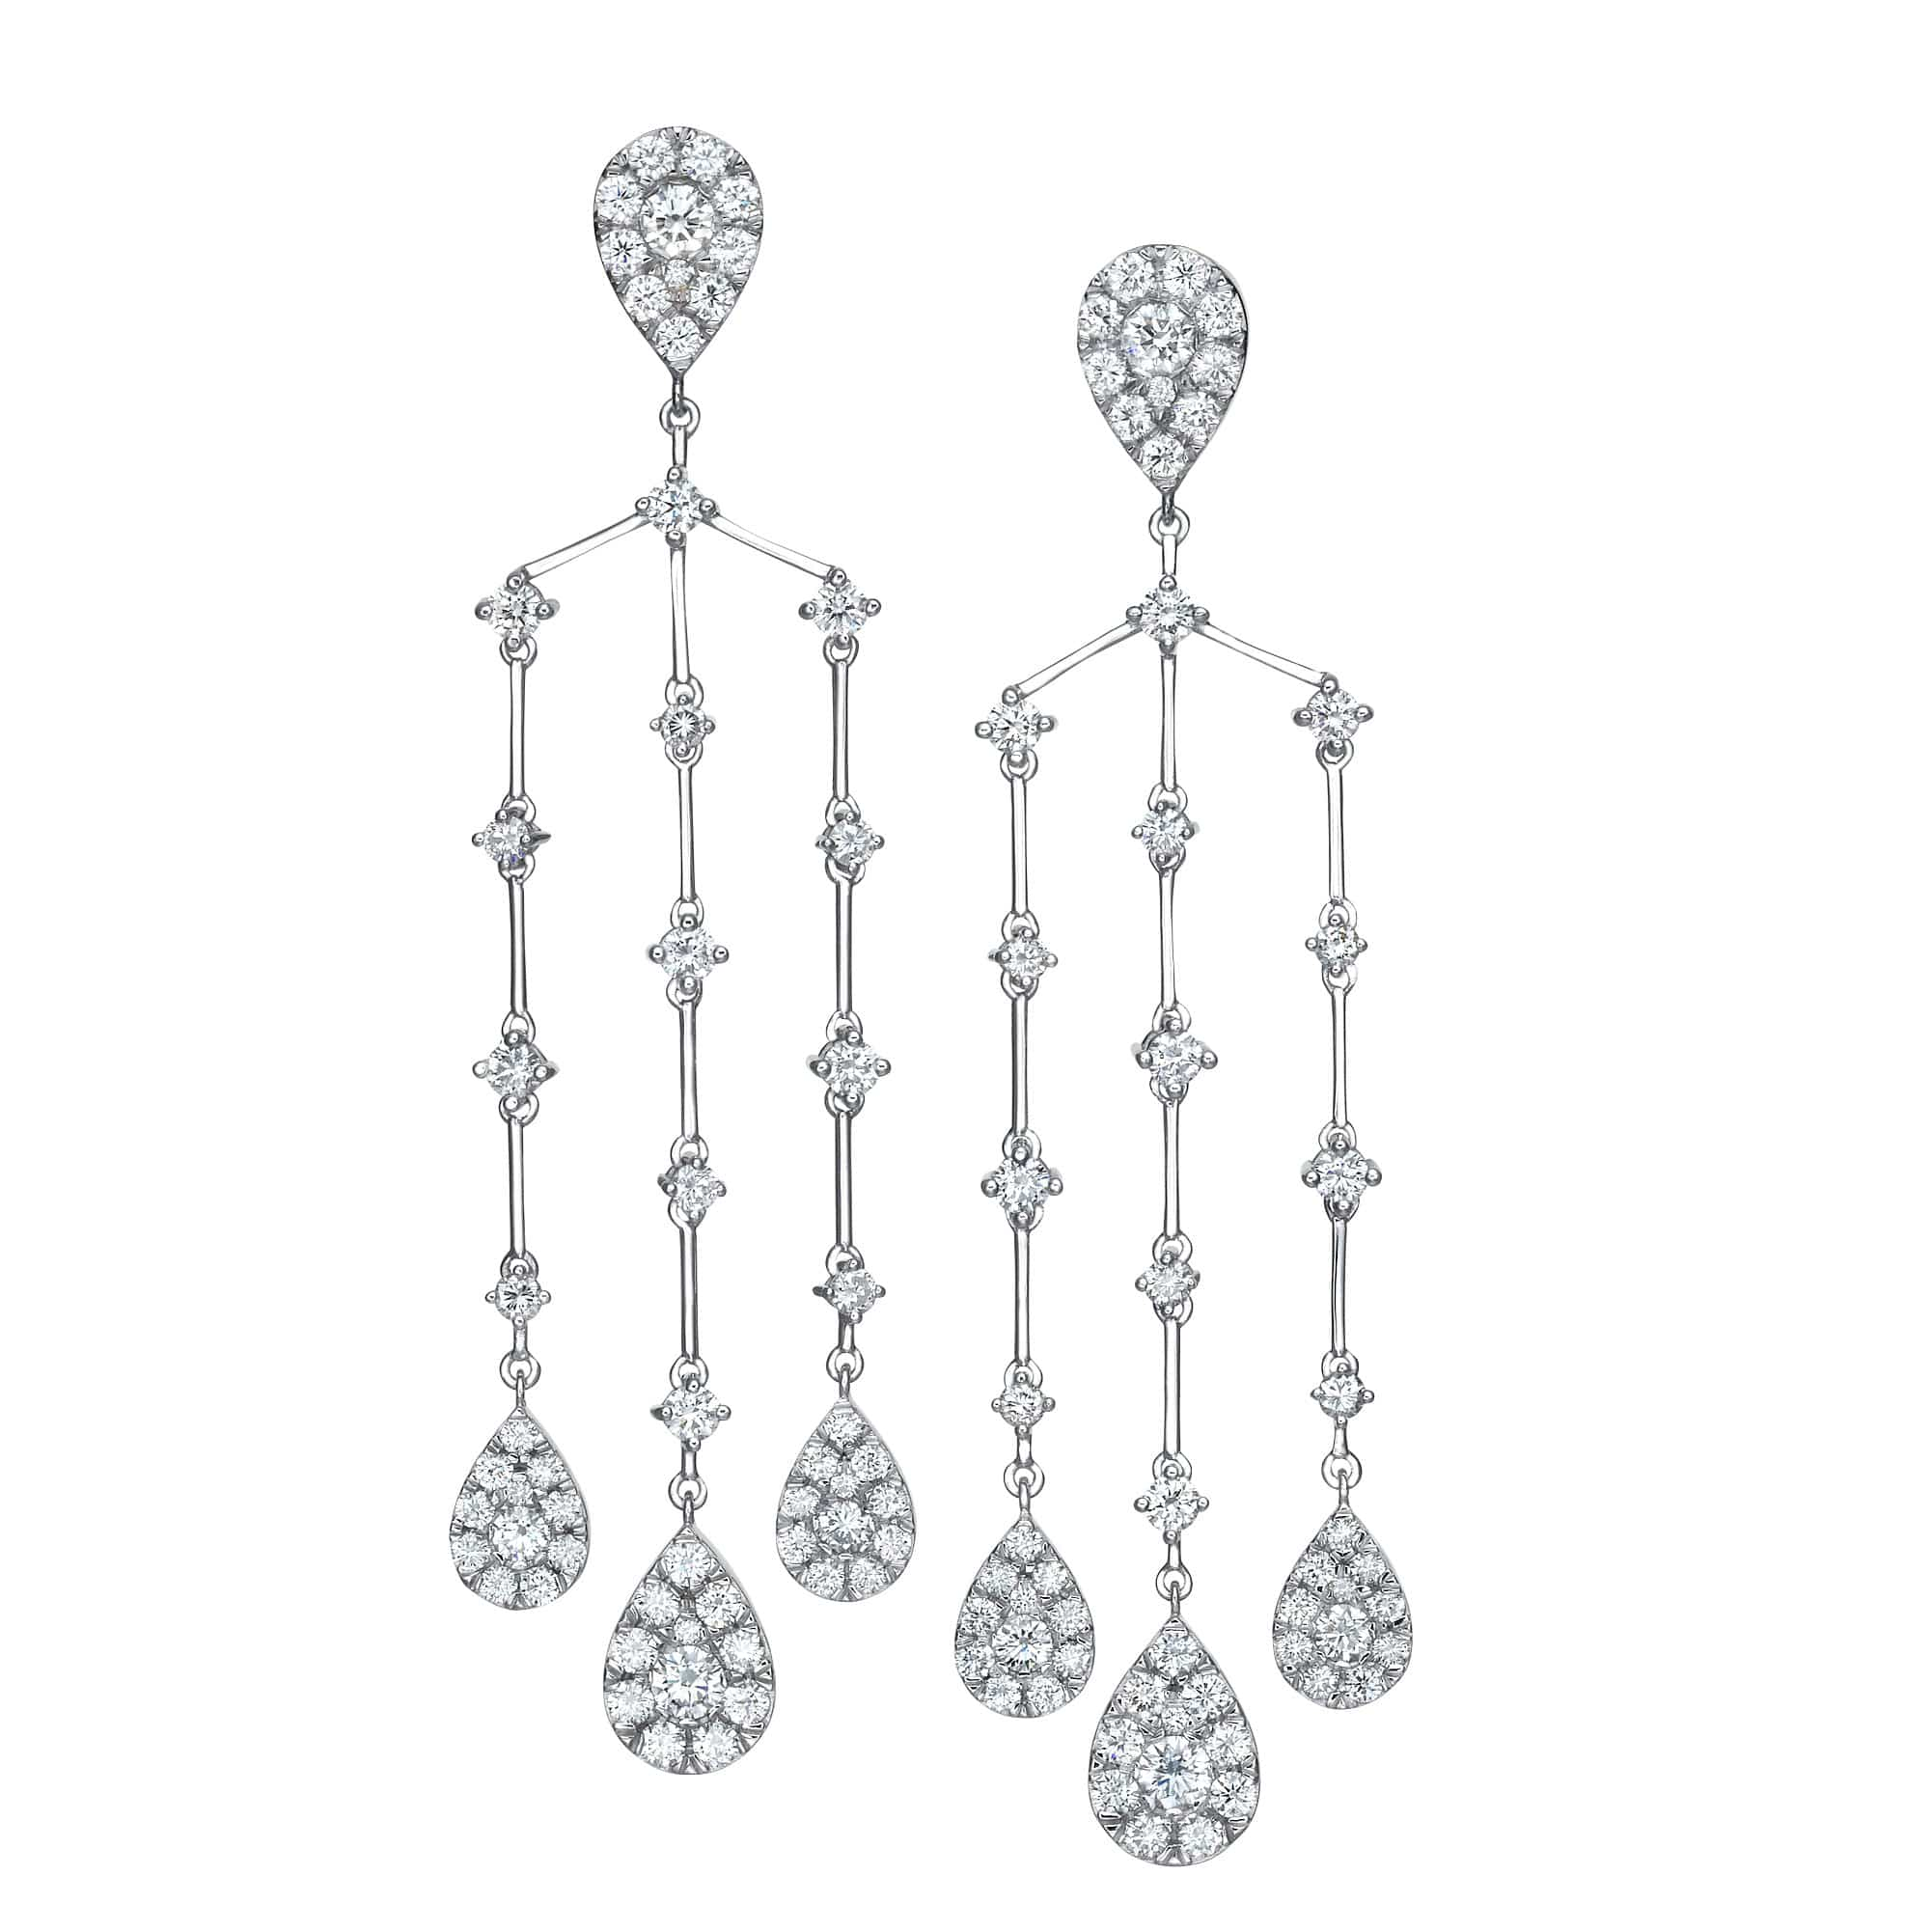 6.12 ct Illusion Set Chandelier Earrings